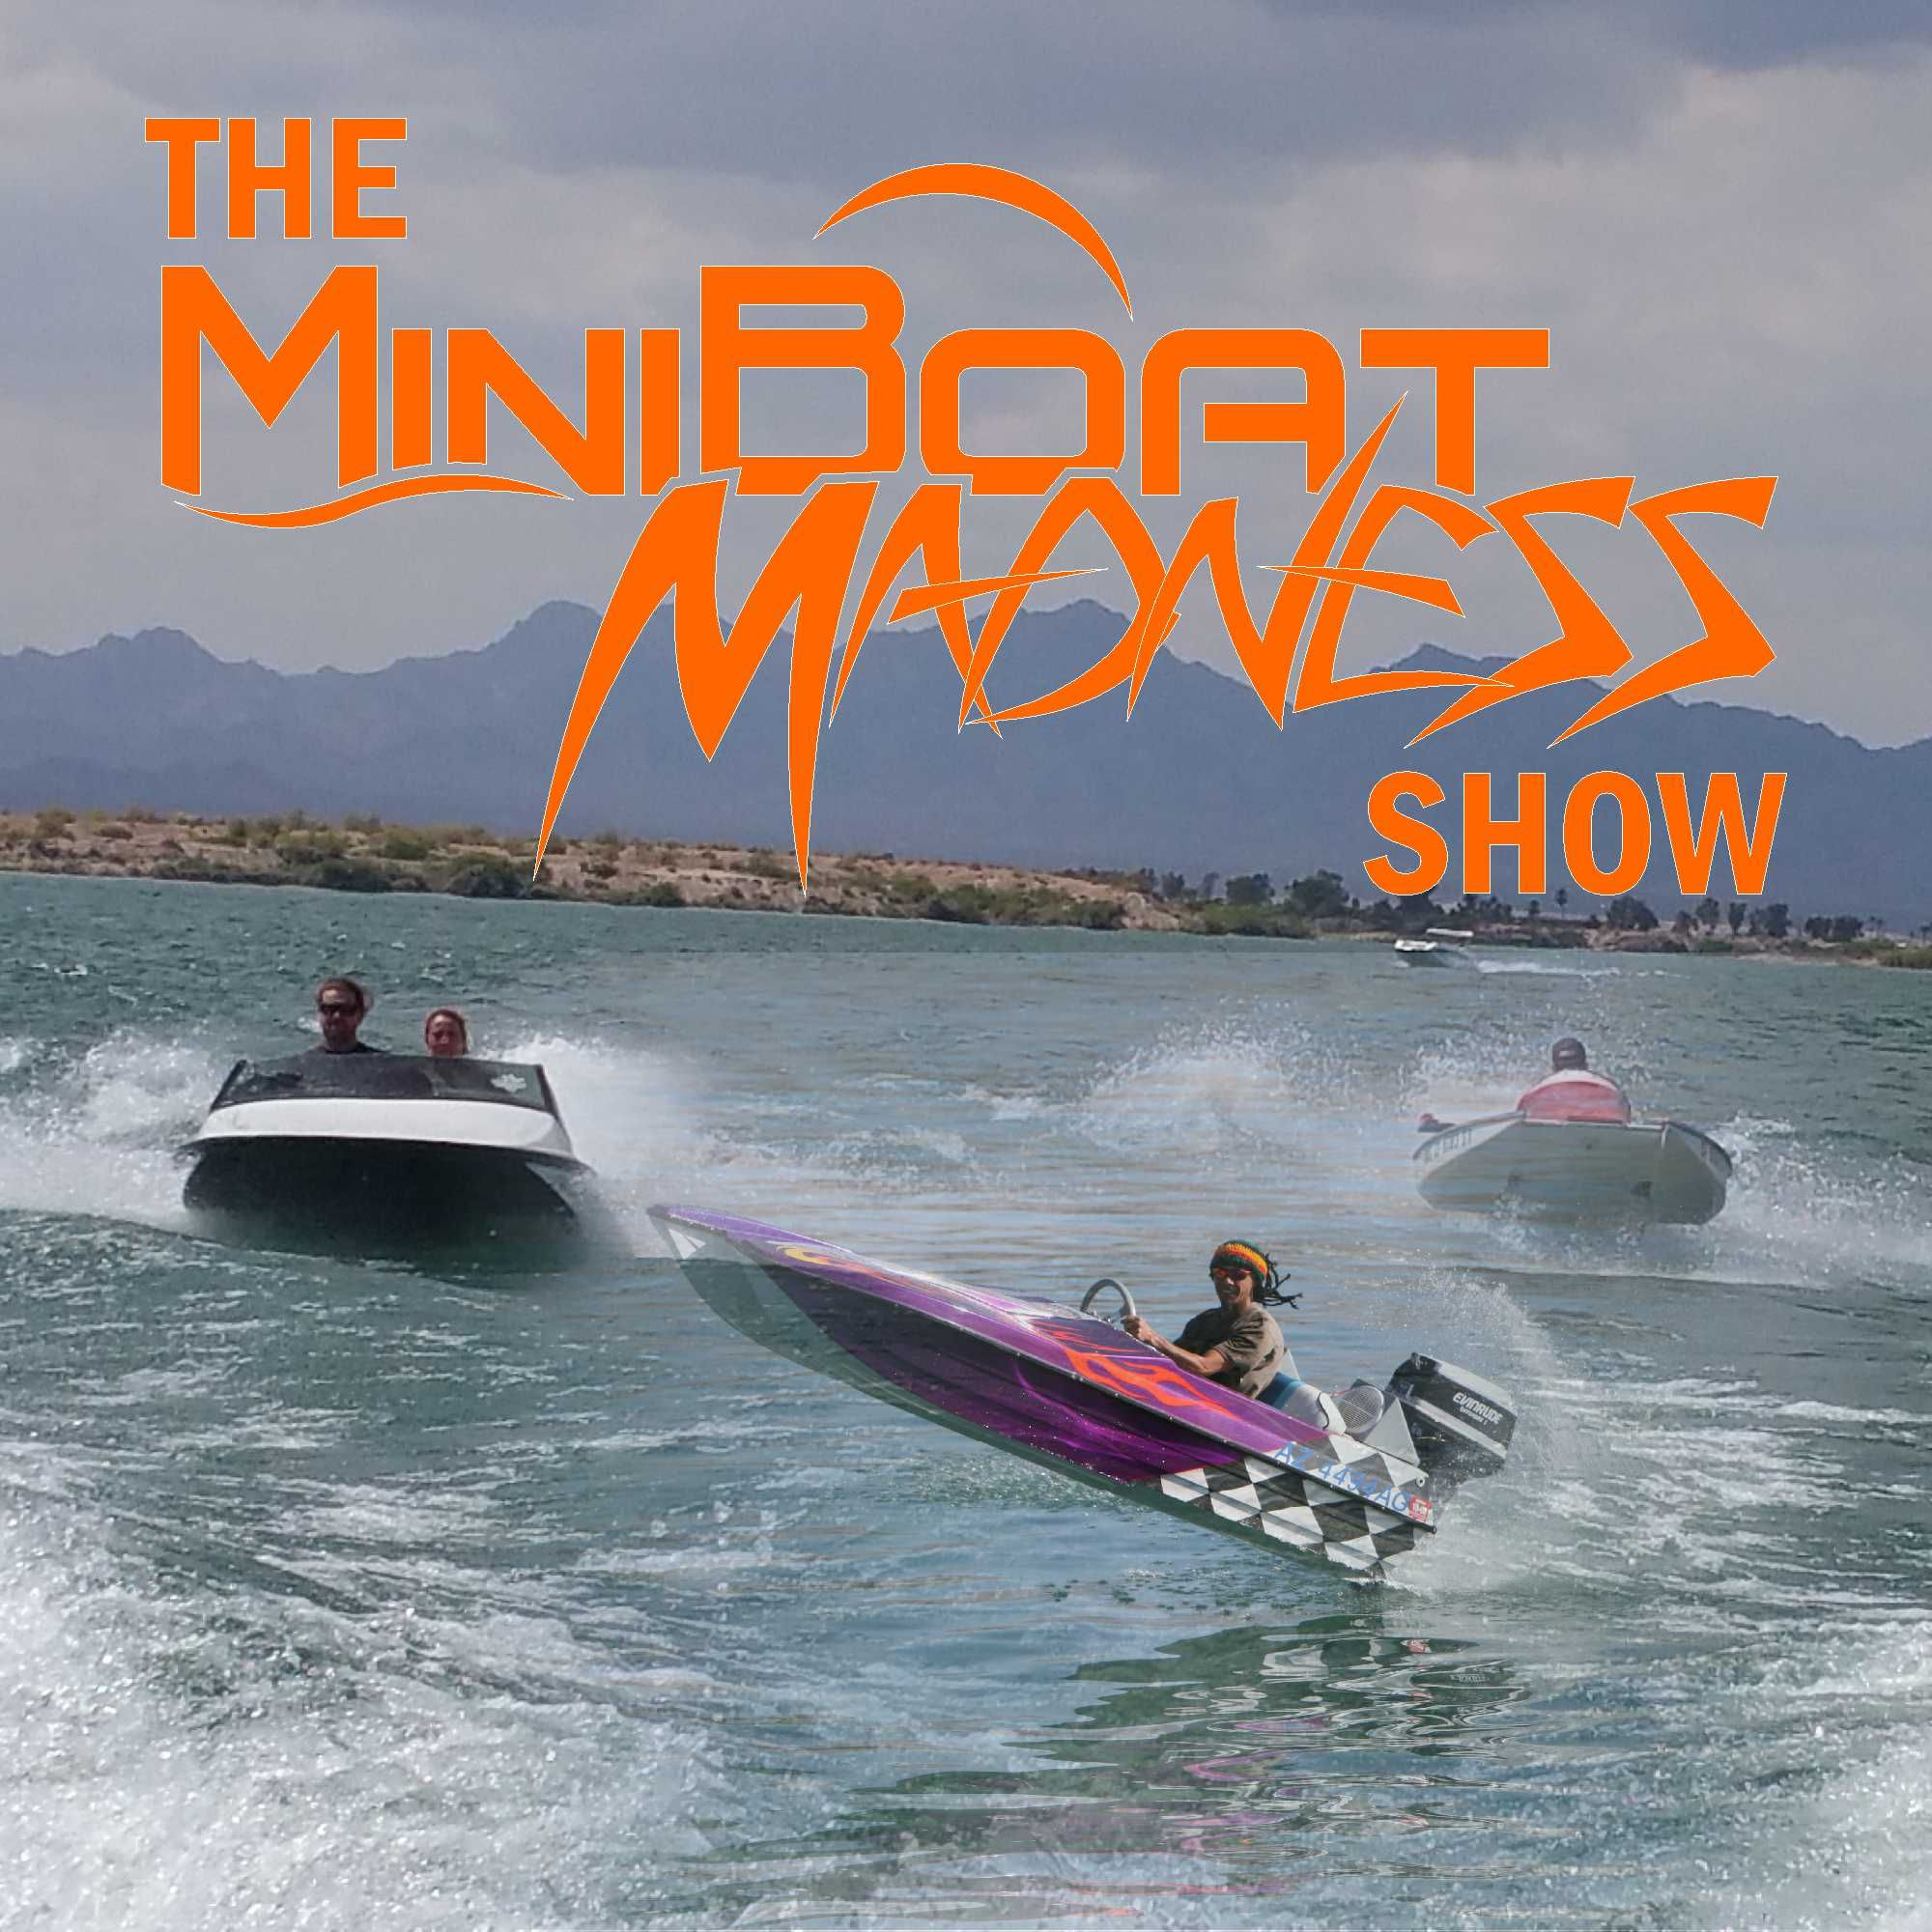 The Mini Boat Madness Show – How to Buy a Used Mini